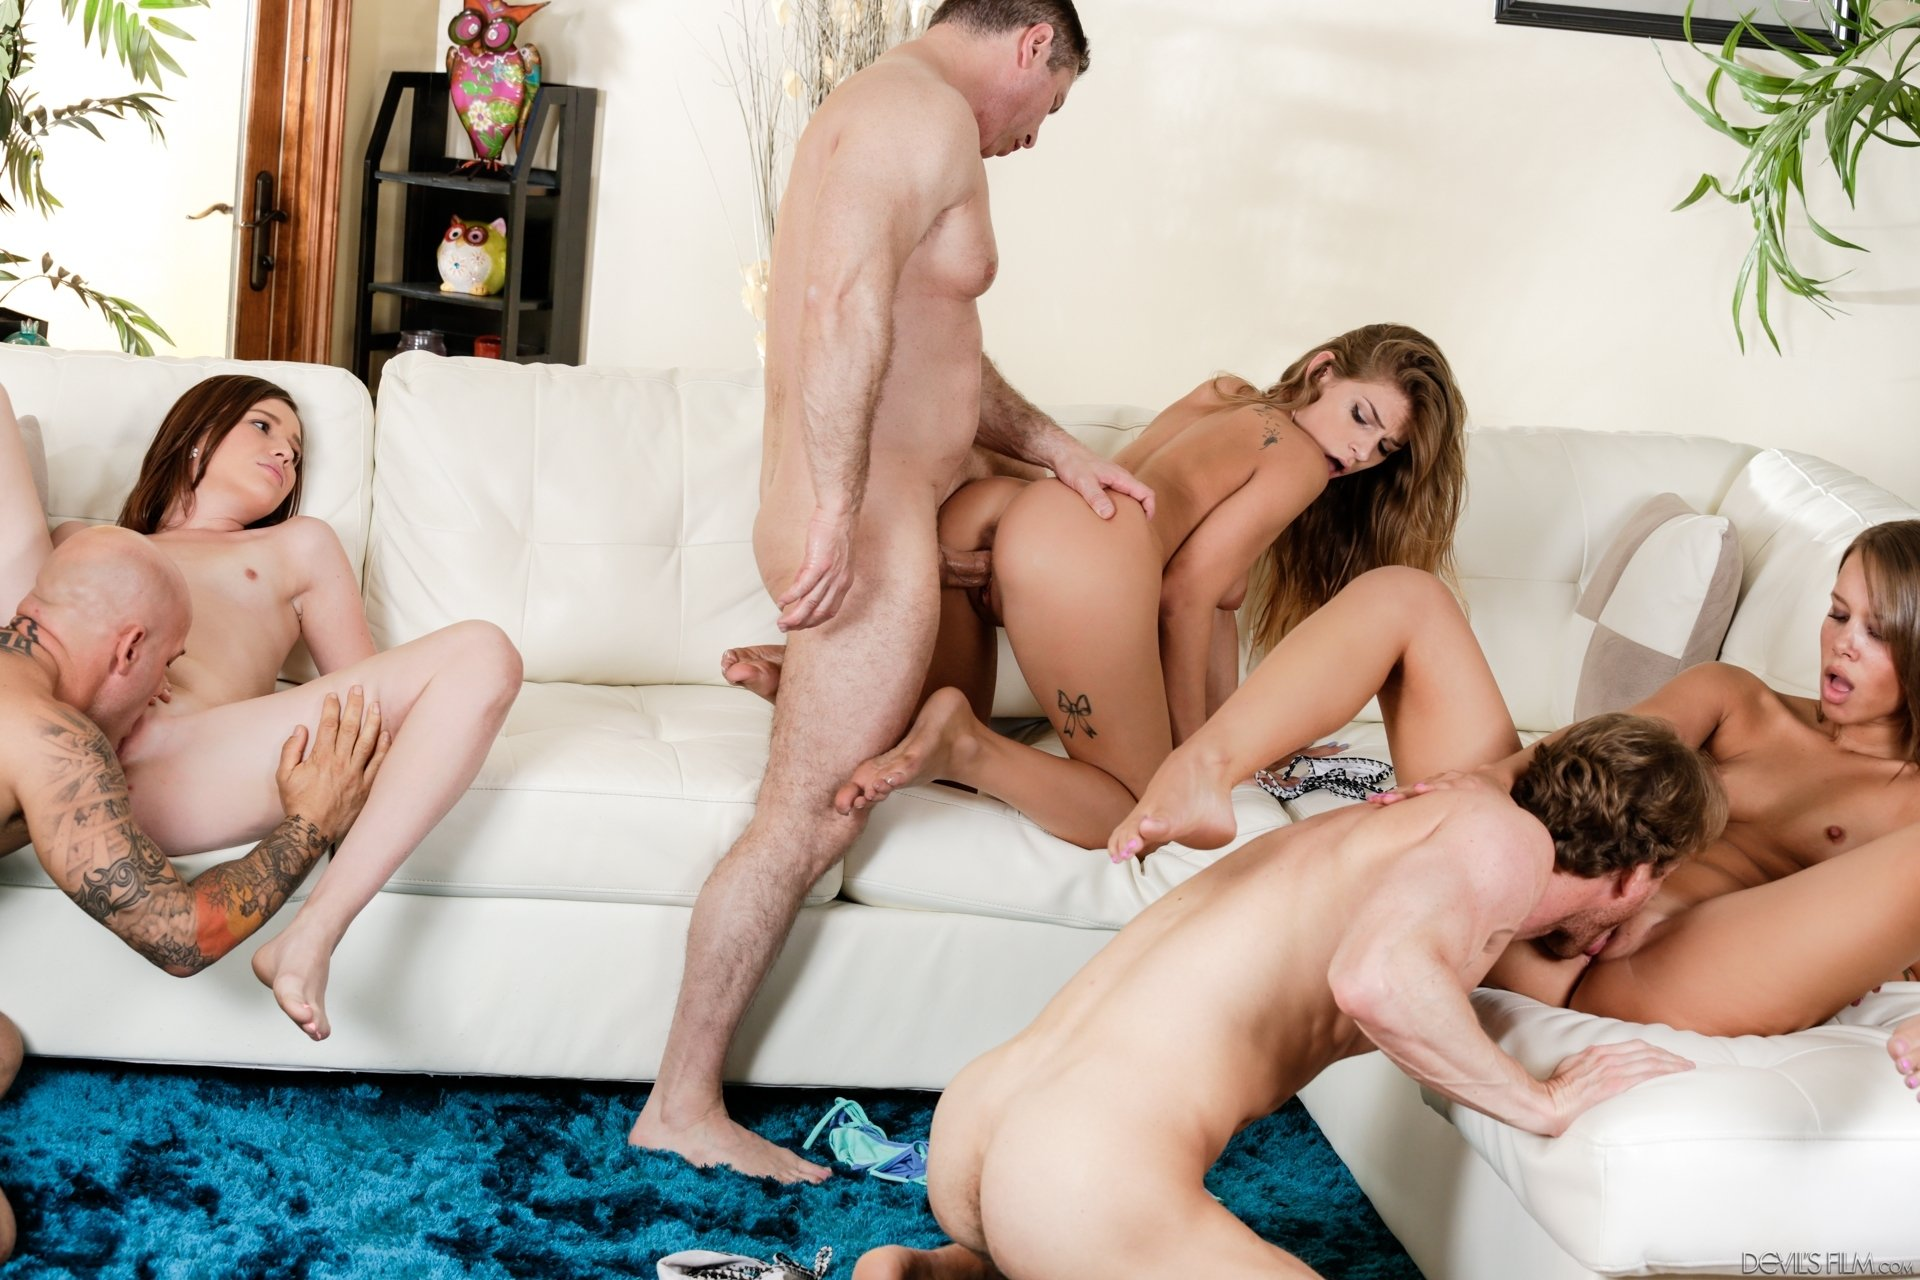 Group porn mature Swinger party videos